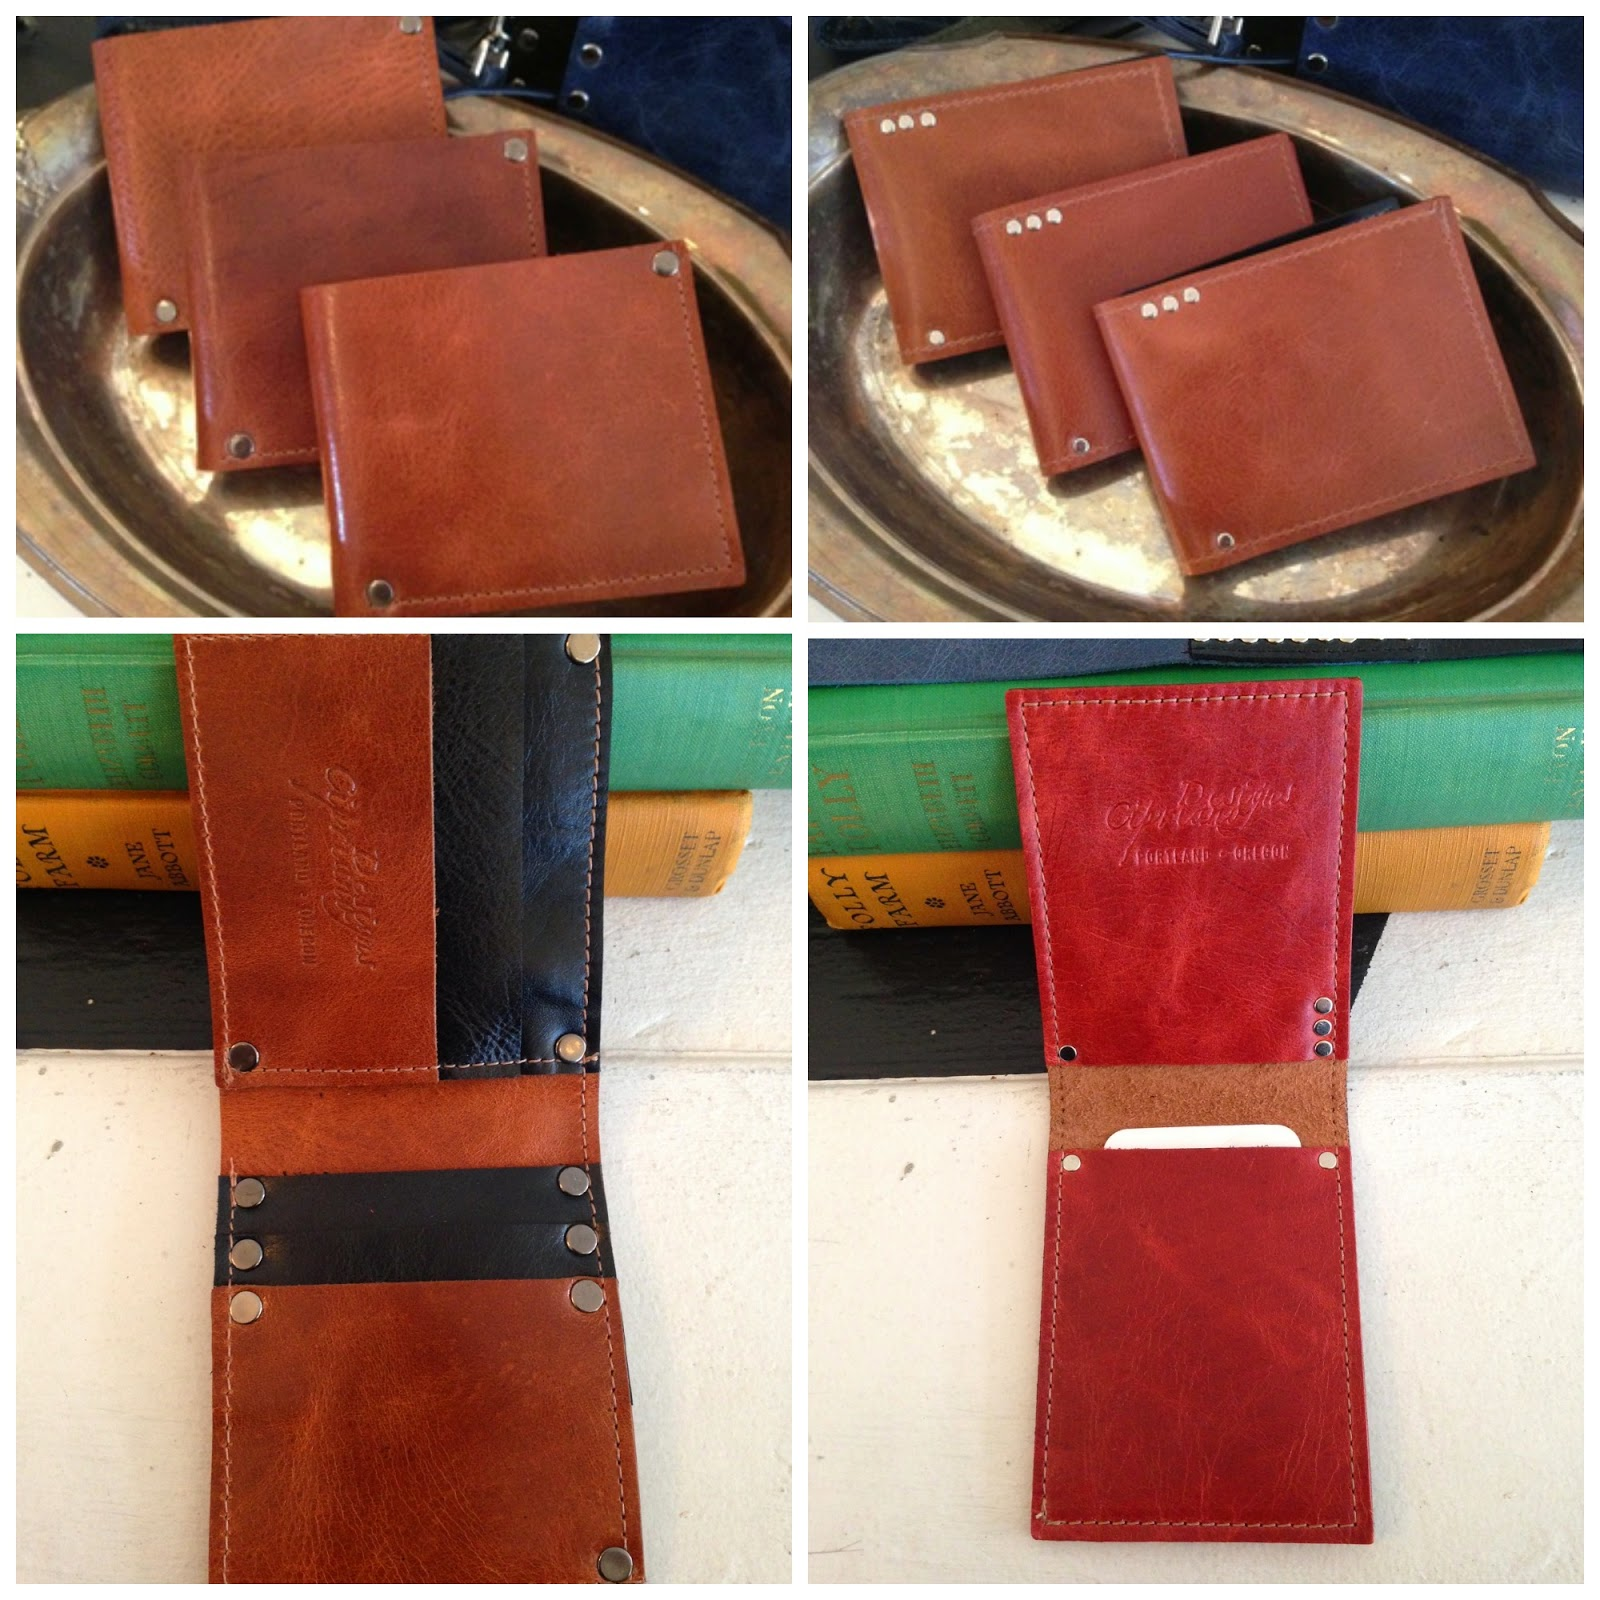 Leather wallets by Cipriano Designs at Folly